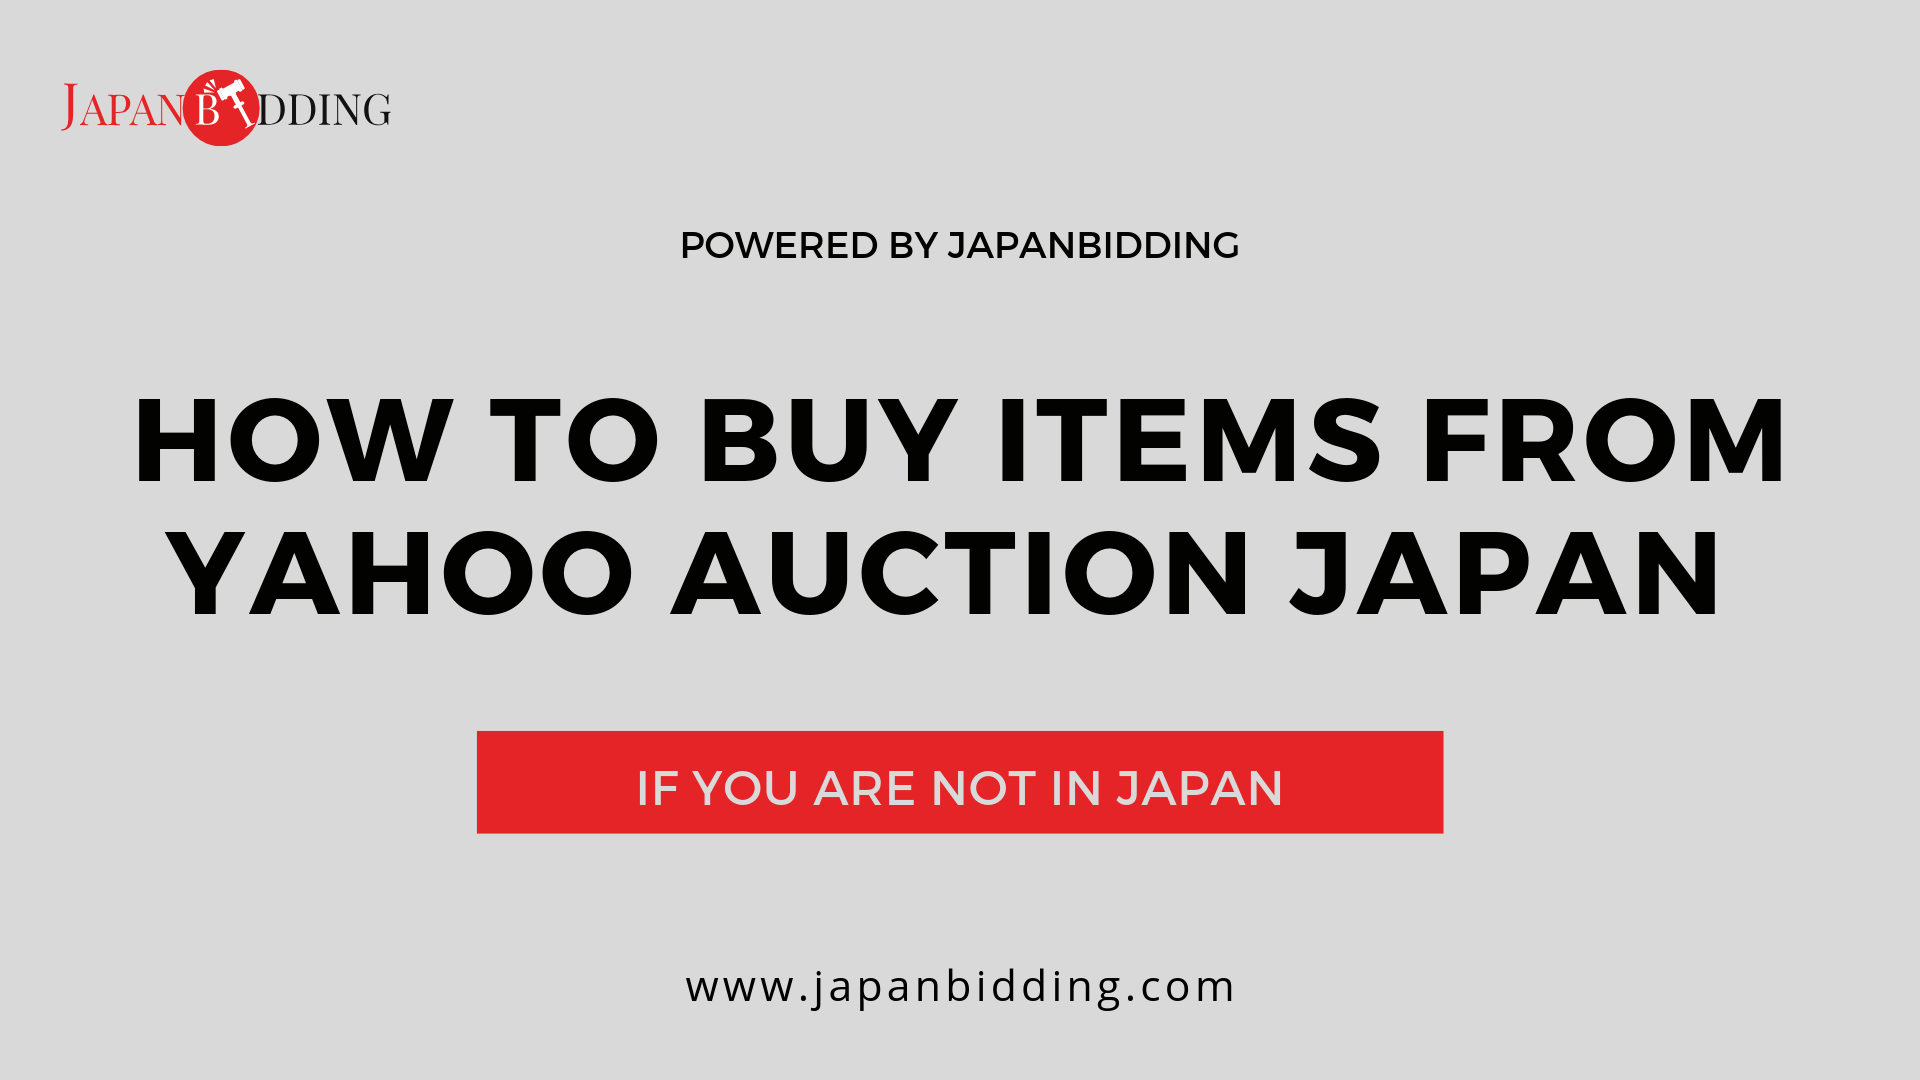 How To Buy Items From Yahoo Auction Japan